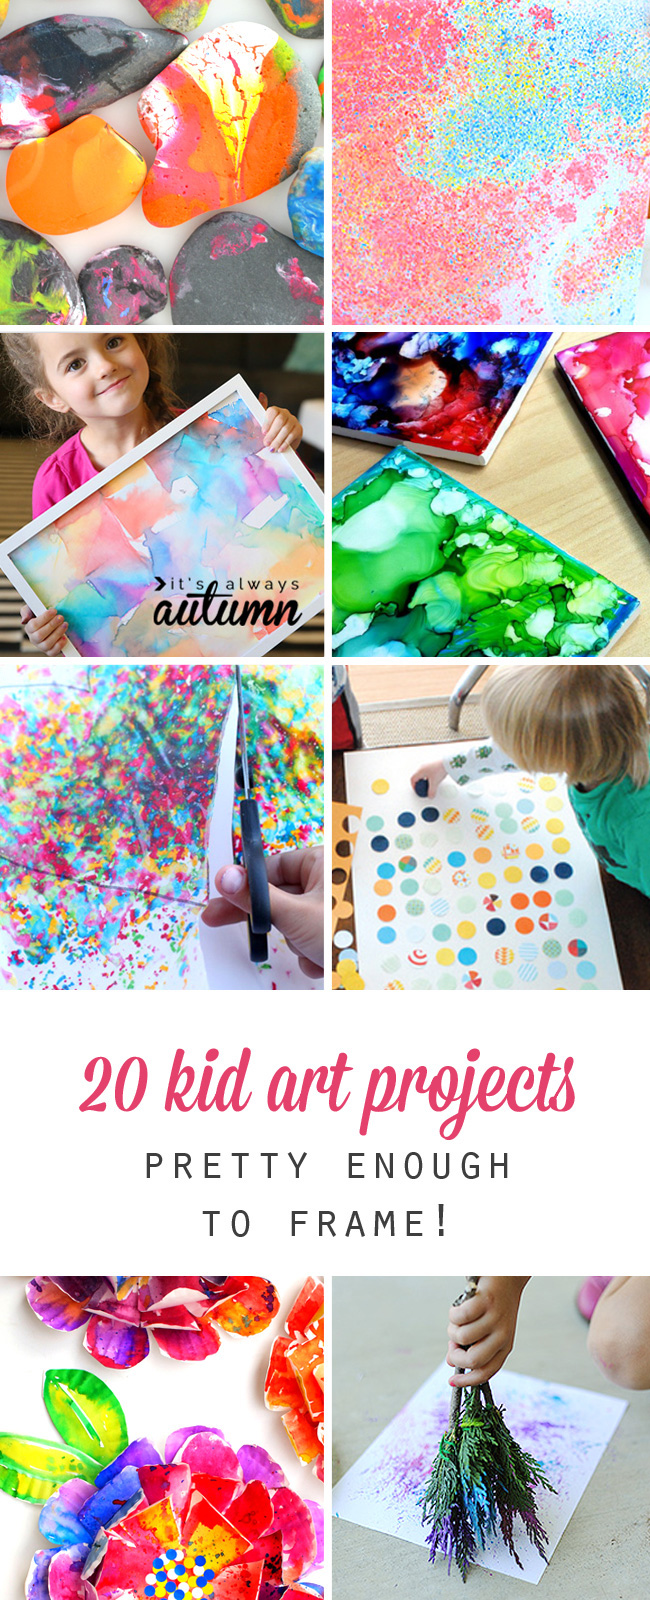 20 Kid Art Projects Pretty Enough To Frame Its Always